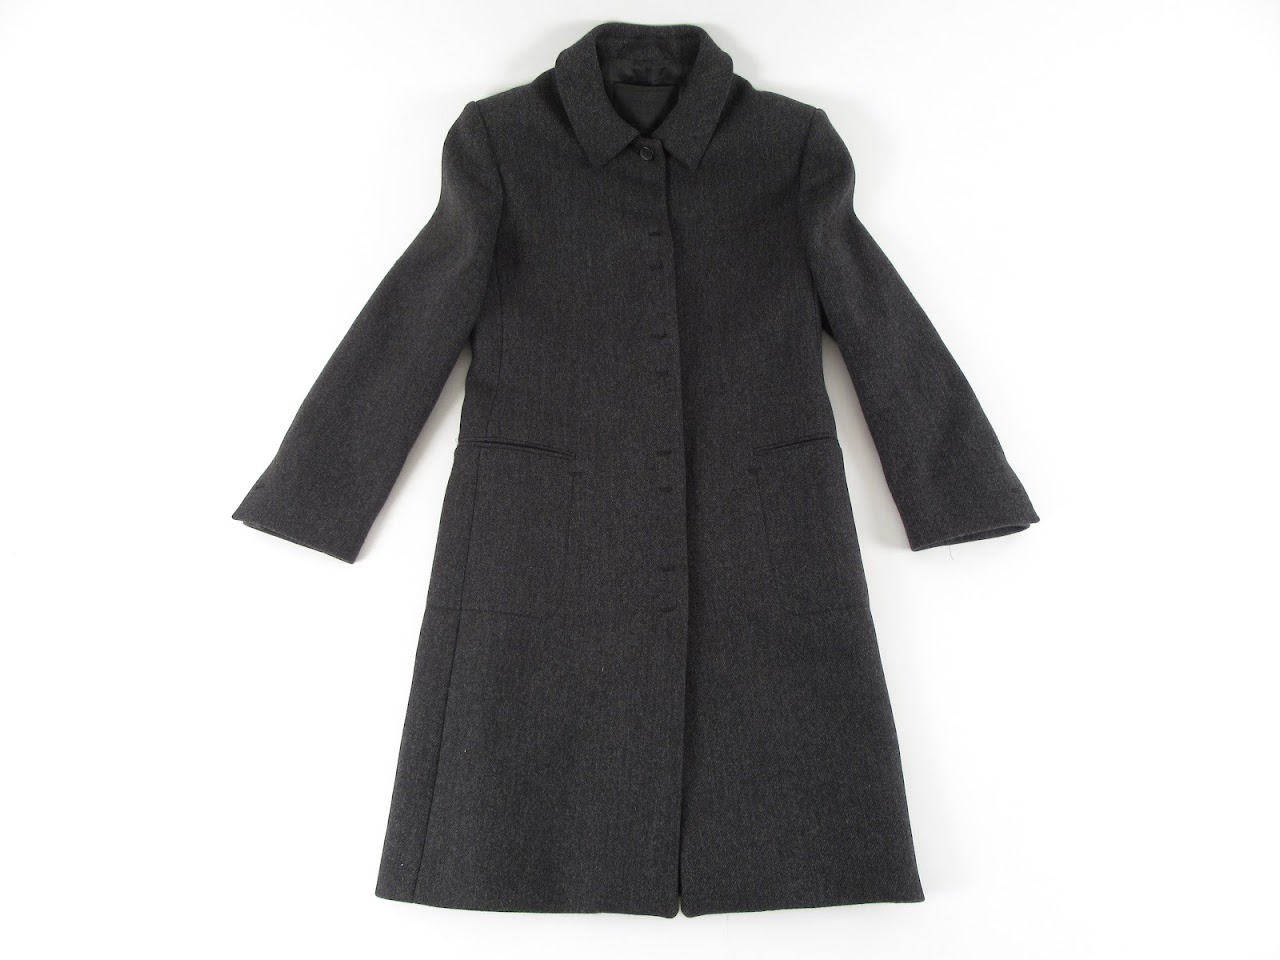 Prada Gray Tweed Coat